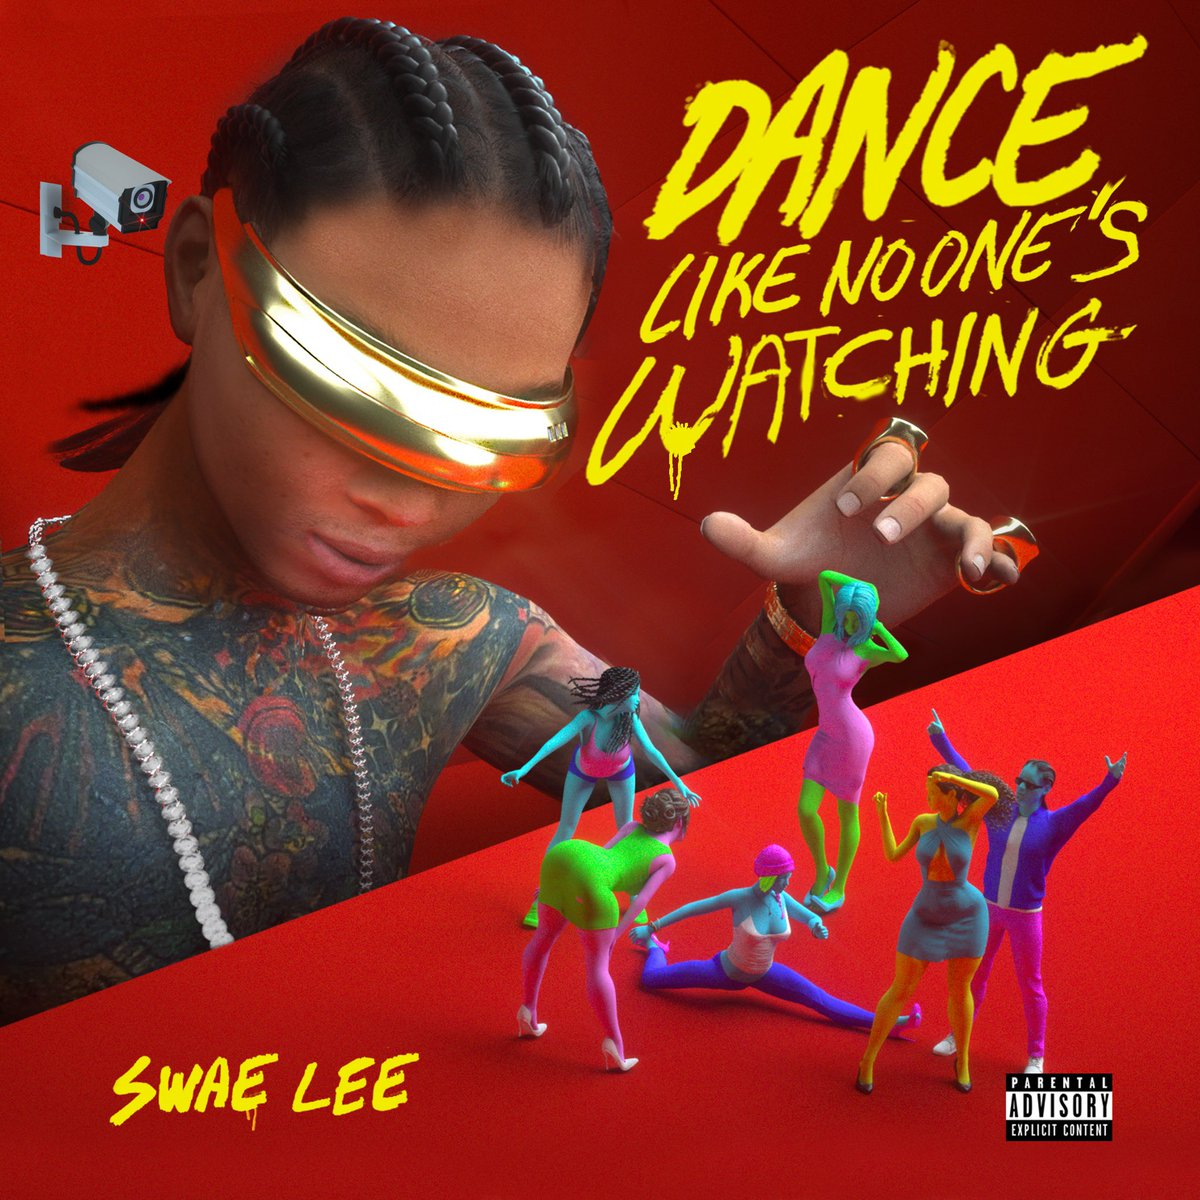 @SwaeLee dropping his first single off his new album HUMAN NATURE on Sep 25th! Go pre-save it now ✌🏽👁💐🌸🌻🌷🌼🌹🪐 umusic.digital/gwavel